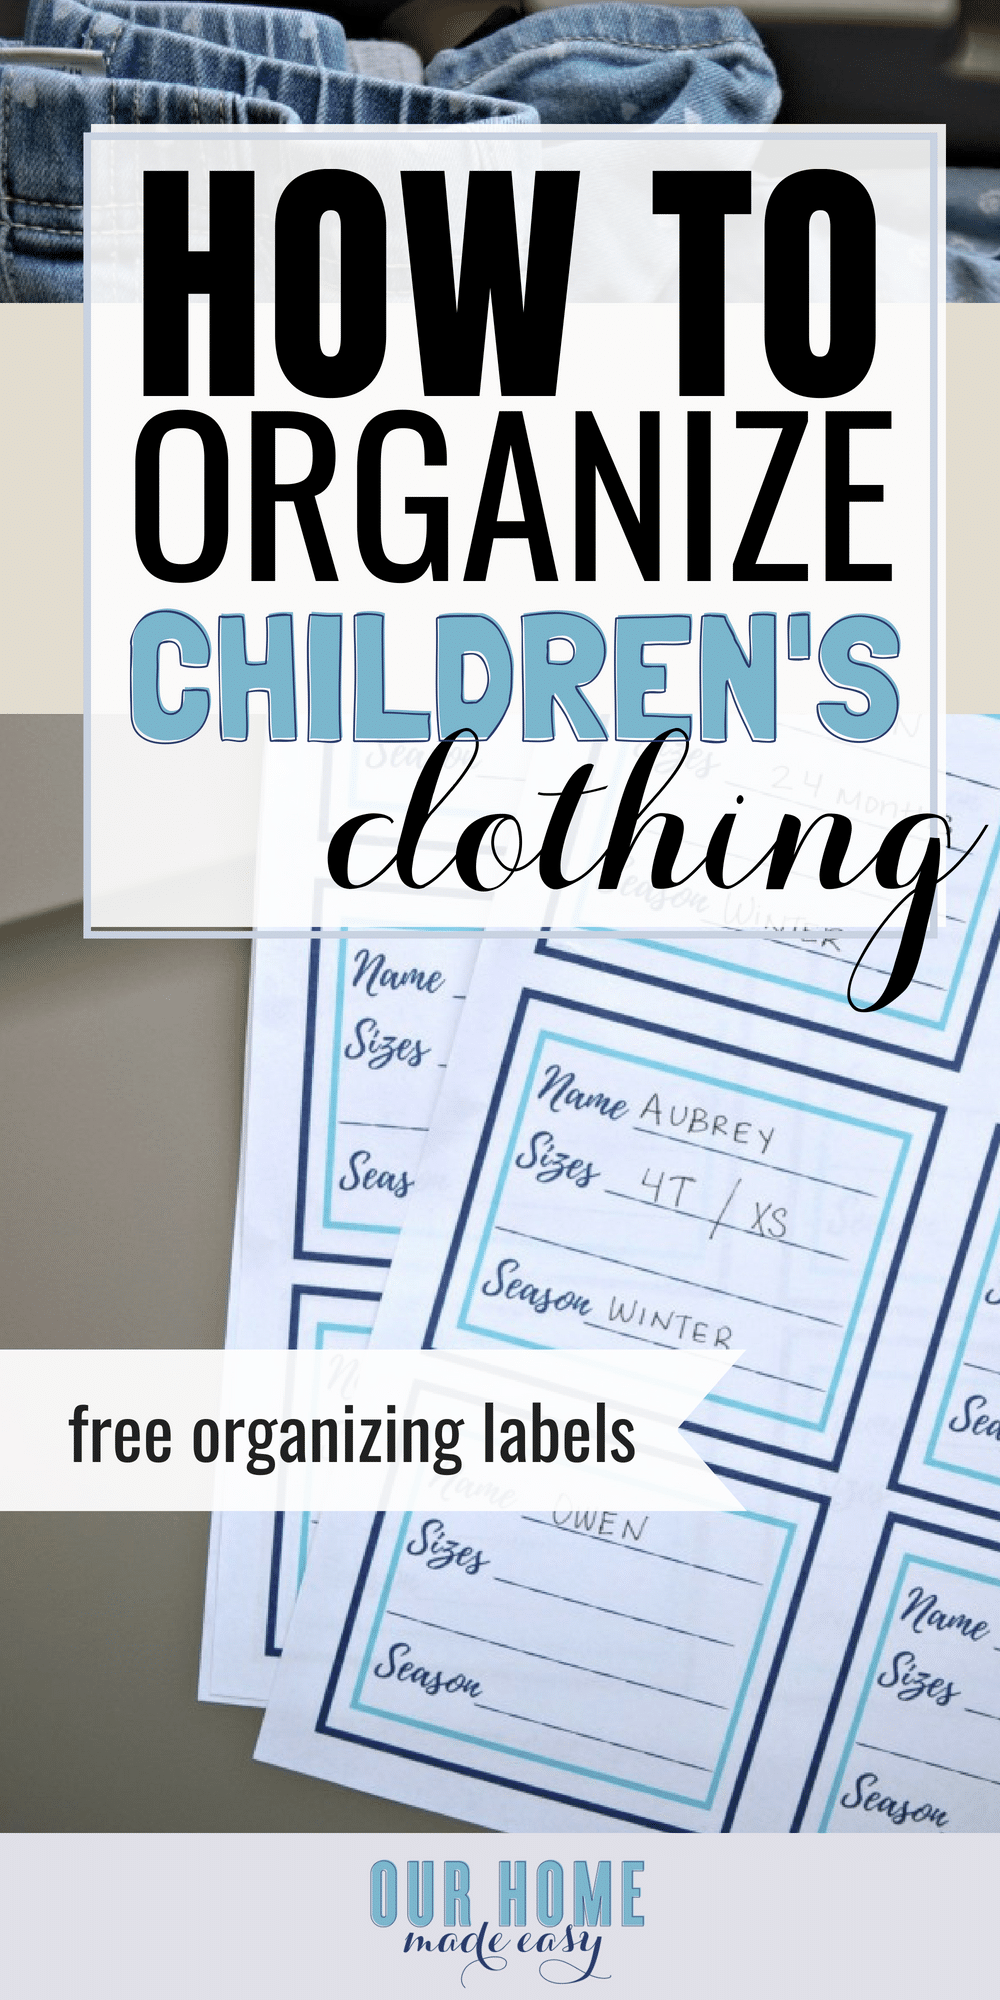 How to Organize Children's Clothing Plus Free Printable Organizing Labels